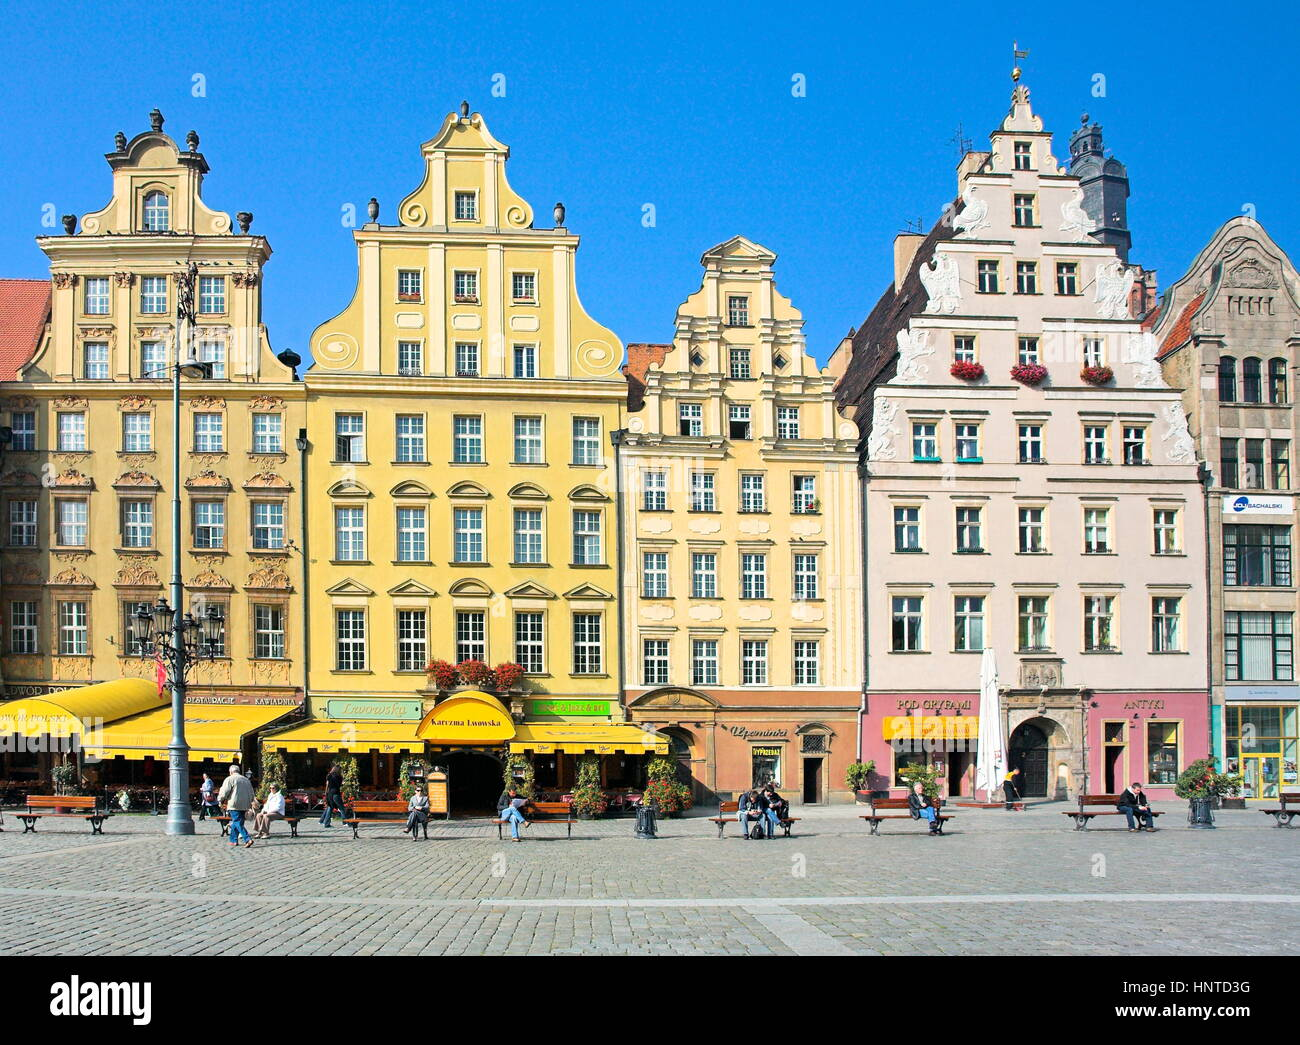 Old Town in Wroclaw, Poland Stock Photo